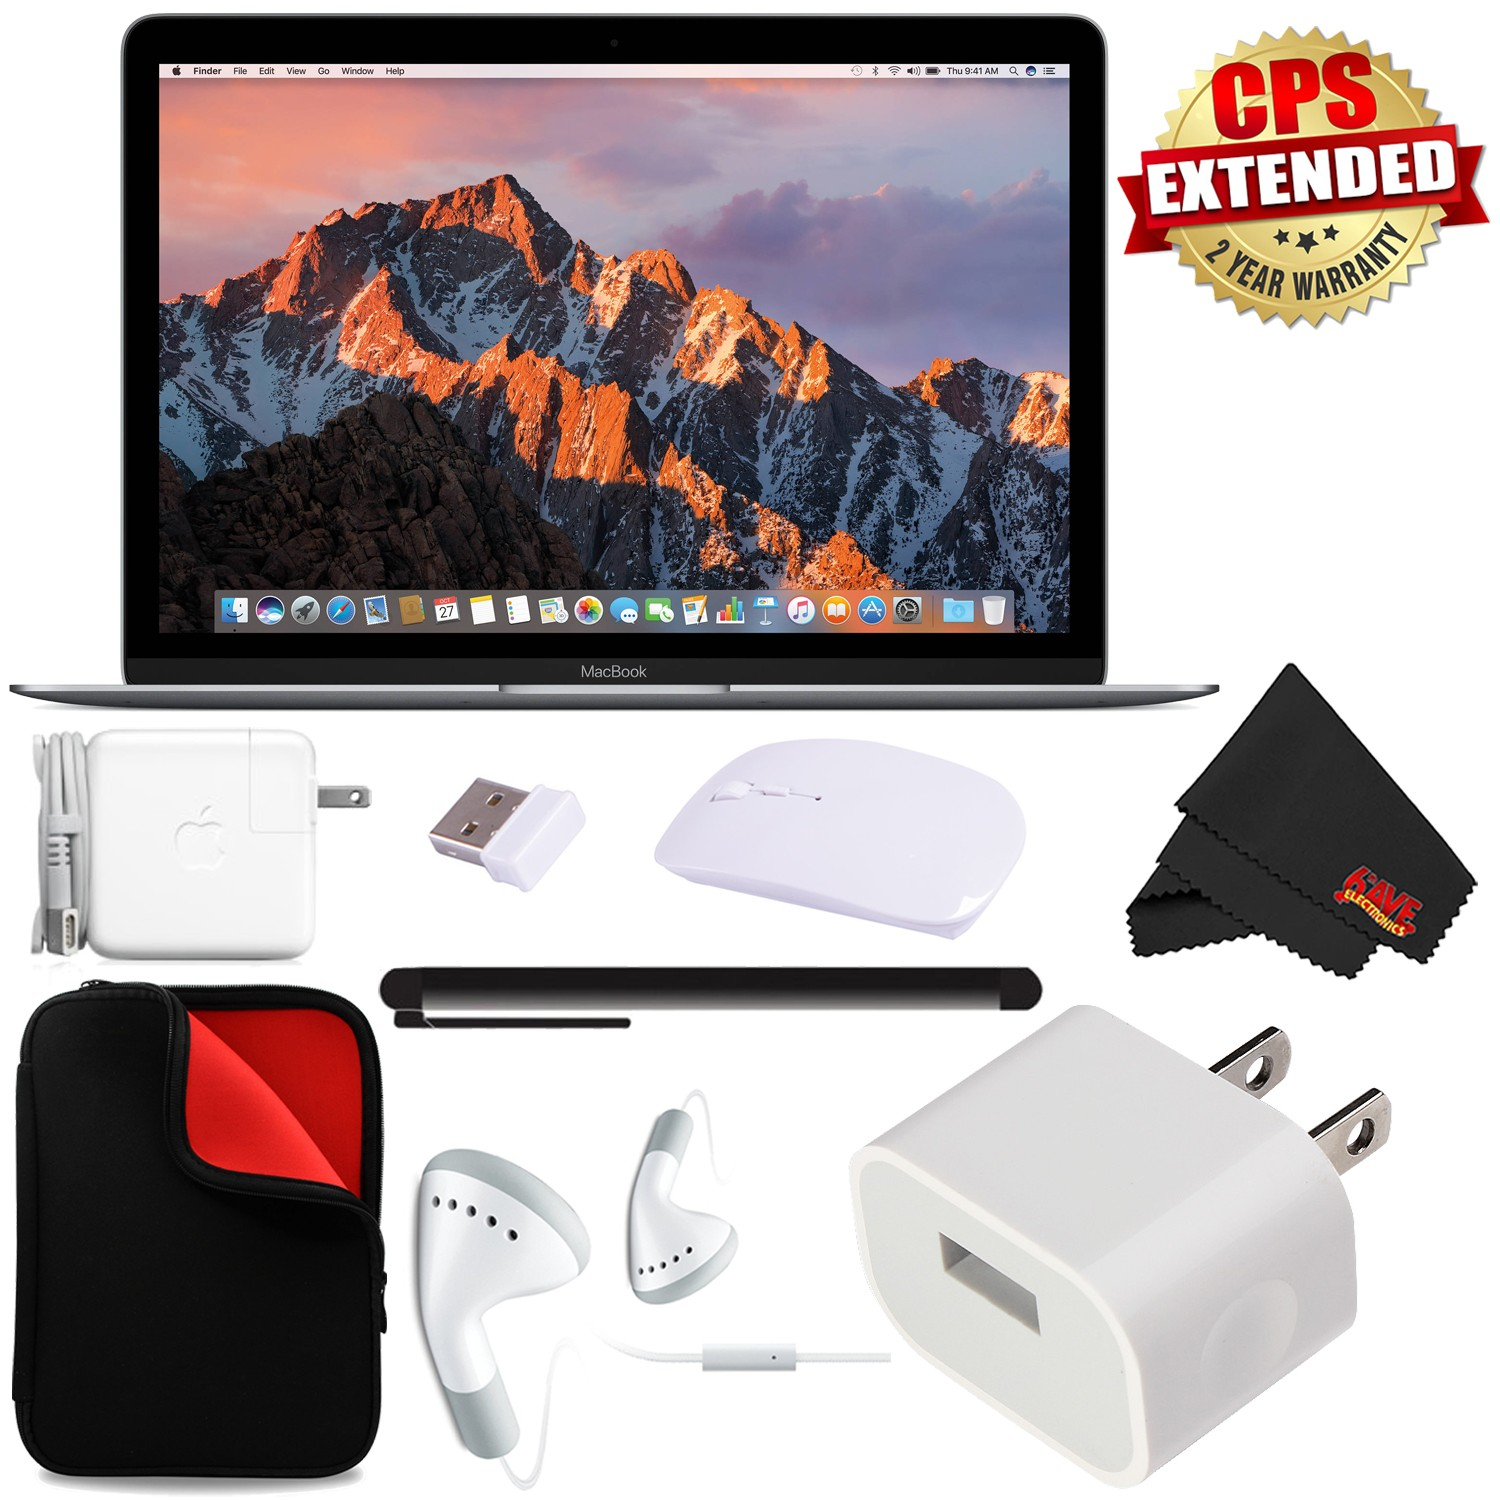 """Apple 12"""" MacBook (Mid 2017 Space Gray) 256GB SSD #MNYF2LL/A + 2.4 GHz Slim Optical Wireless Bluetooth + Padded Case For Macbook Bundle"""